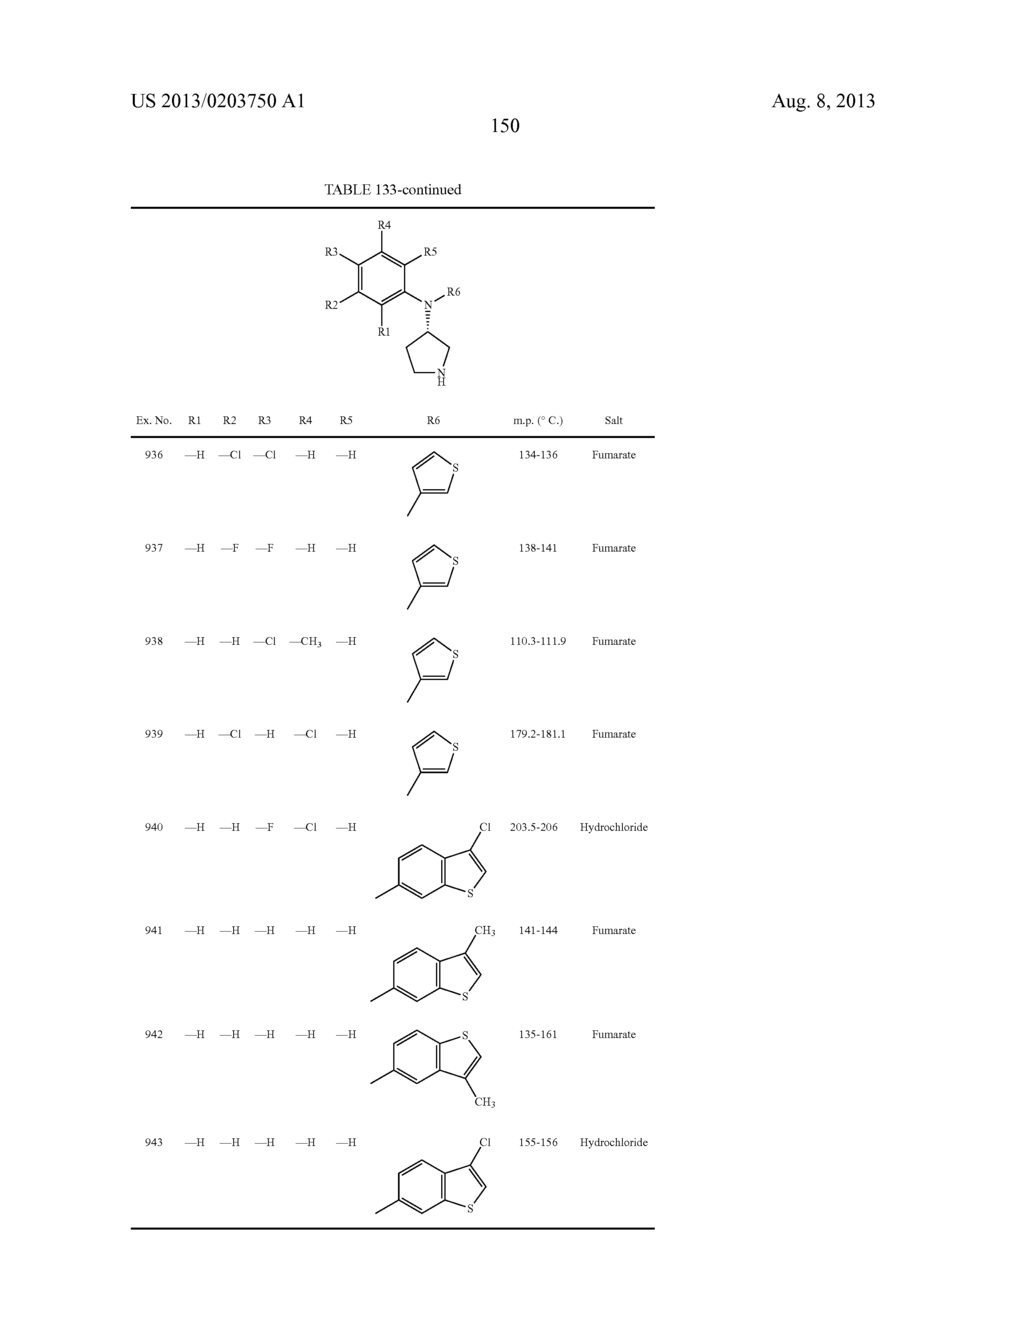 N,N-SUBSTITUTED 3-AMINOPYRROLIDINE COMPOUNDS USEFUL AS MONOAMINES REUPTAKE     INHIBITORS - diagram, schematic, and image 151